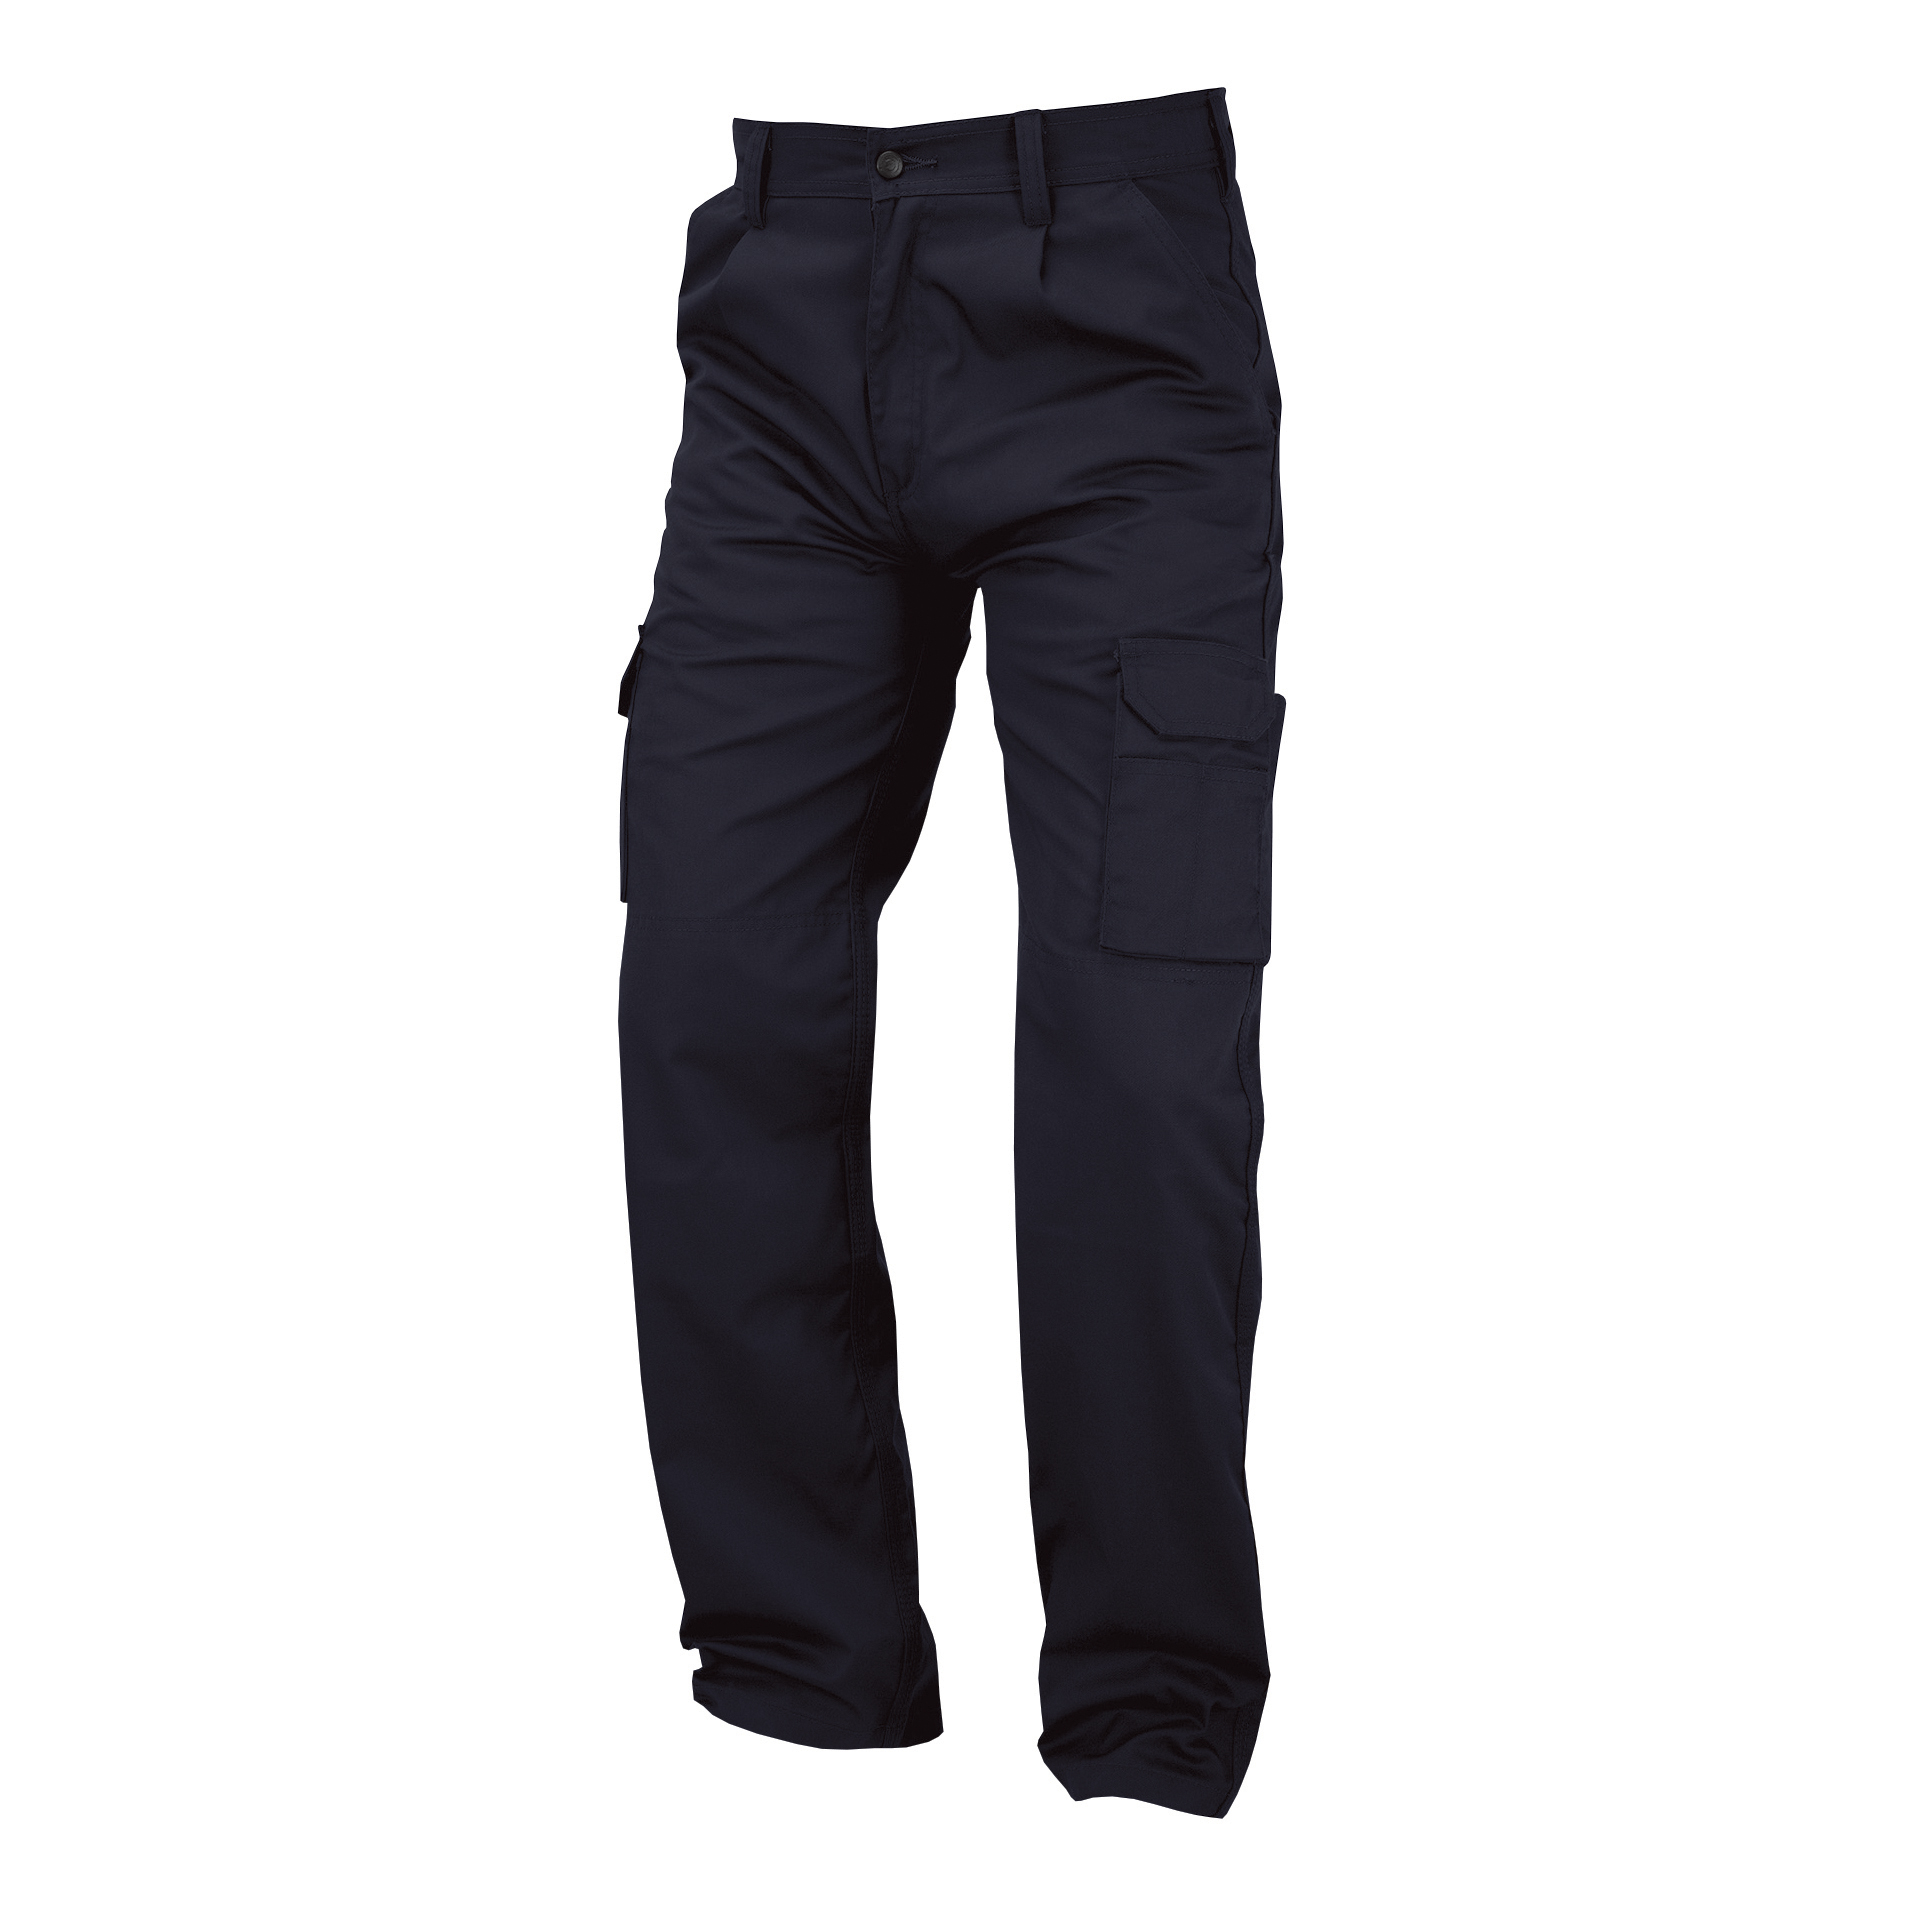 Combat Trousers Polycotton with Pockets 40in Regular Navy Blue Ref PCTHWN40 *1-3 Days Lead Time*